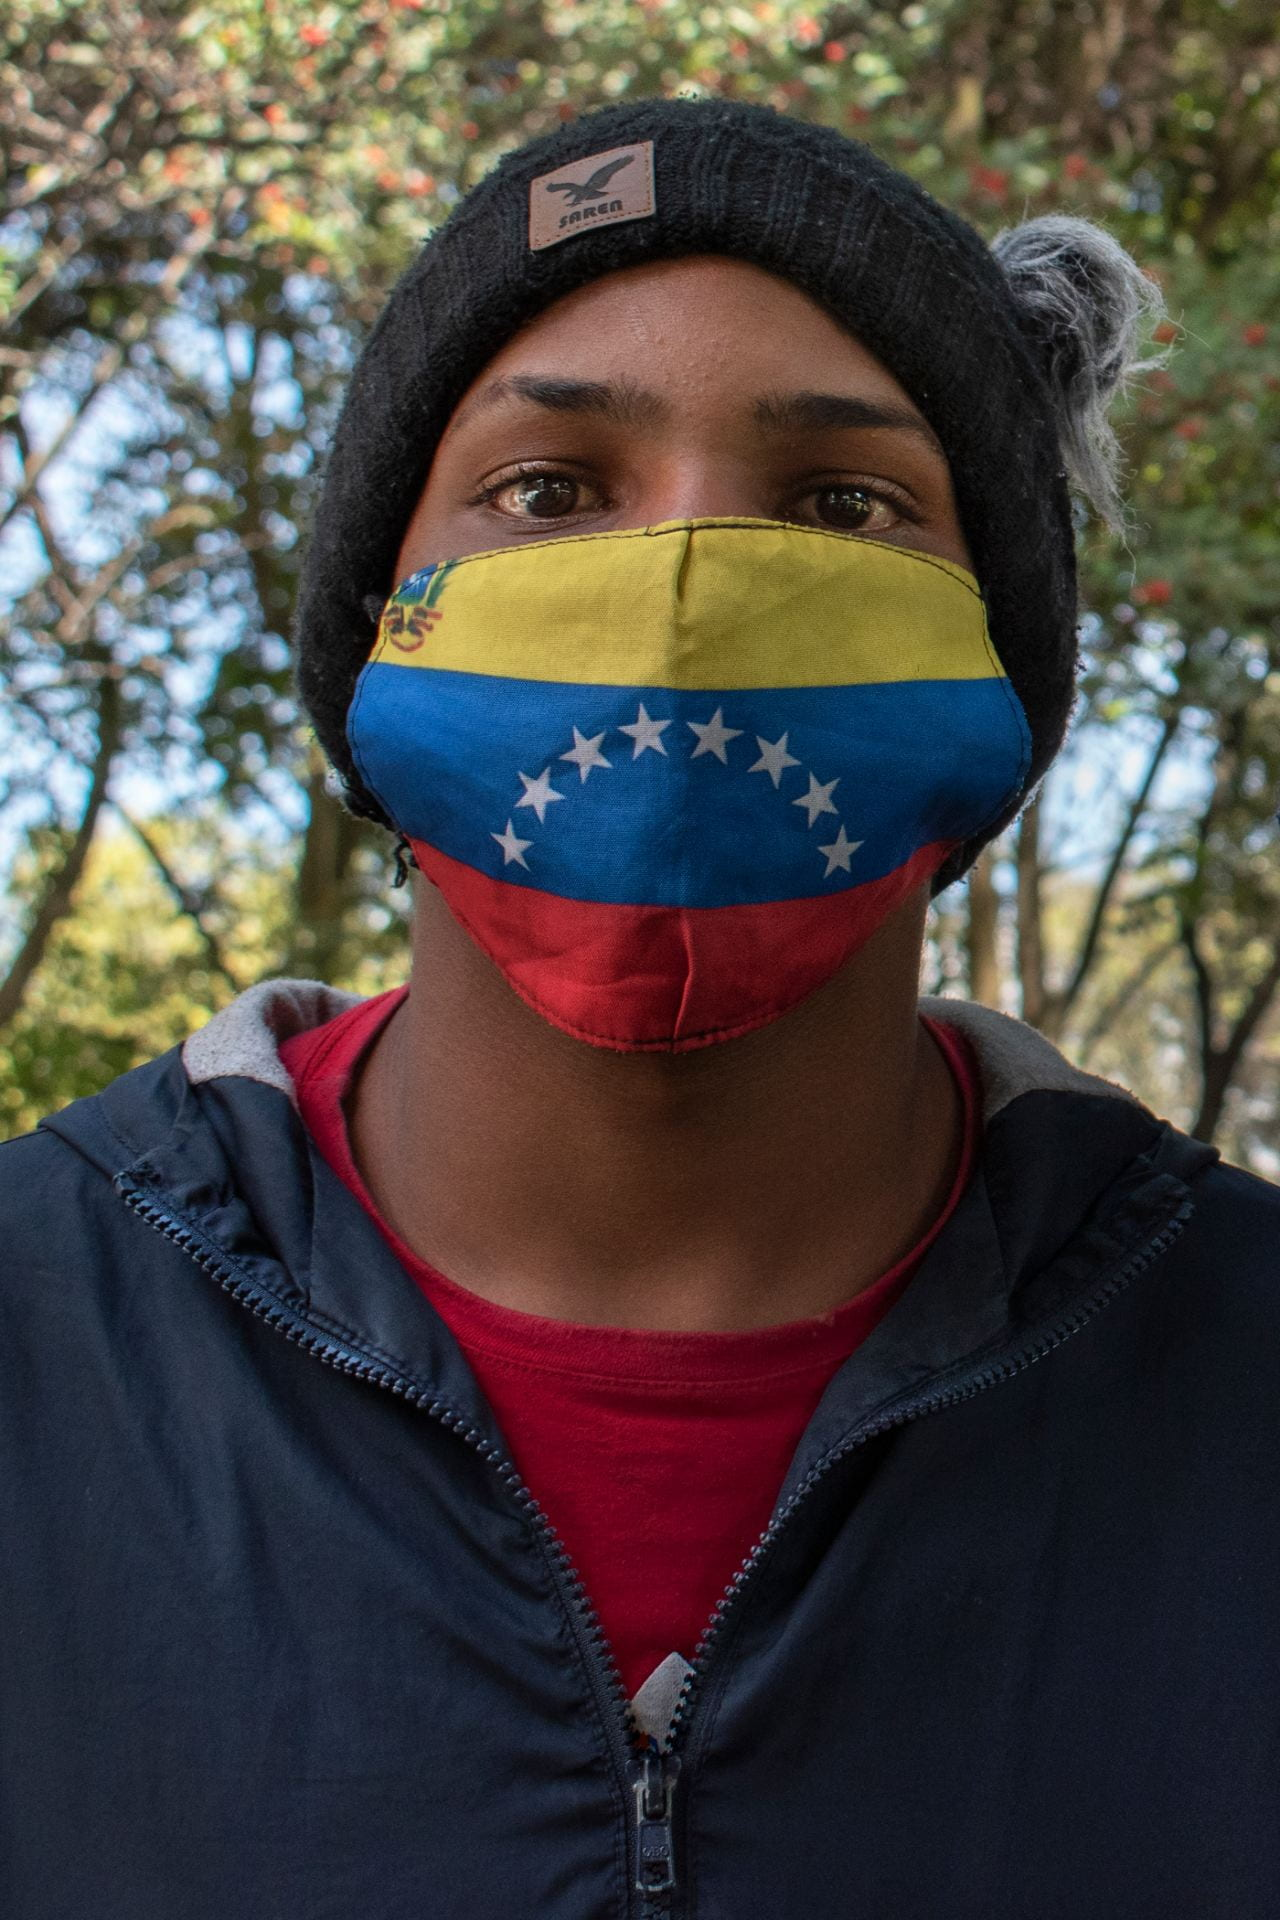 man with Venezuelan flag mask